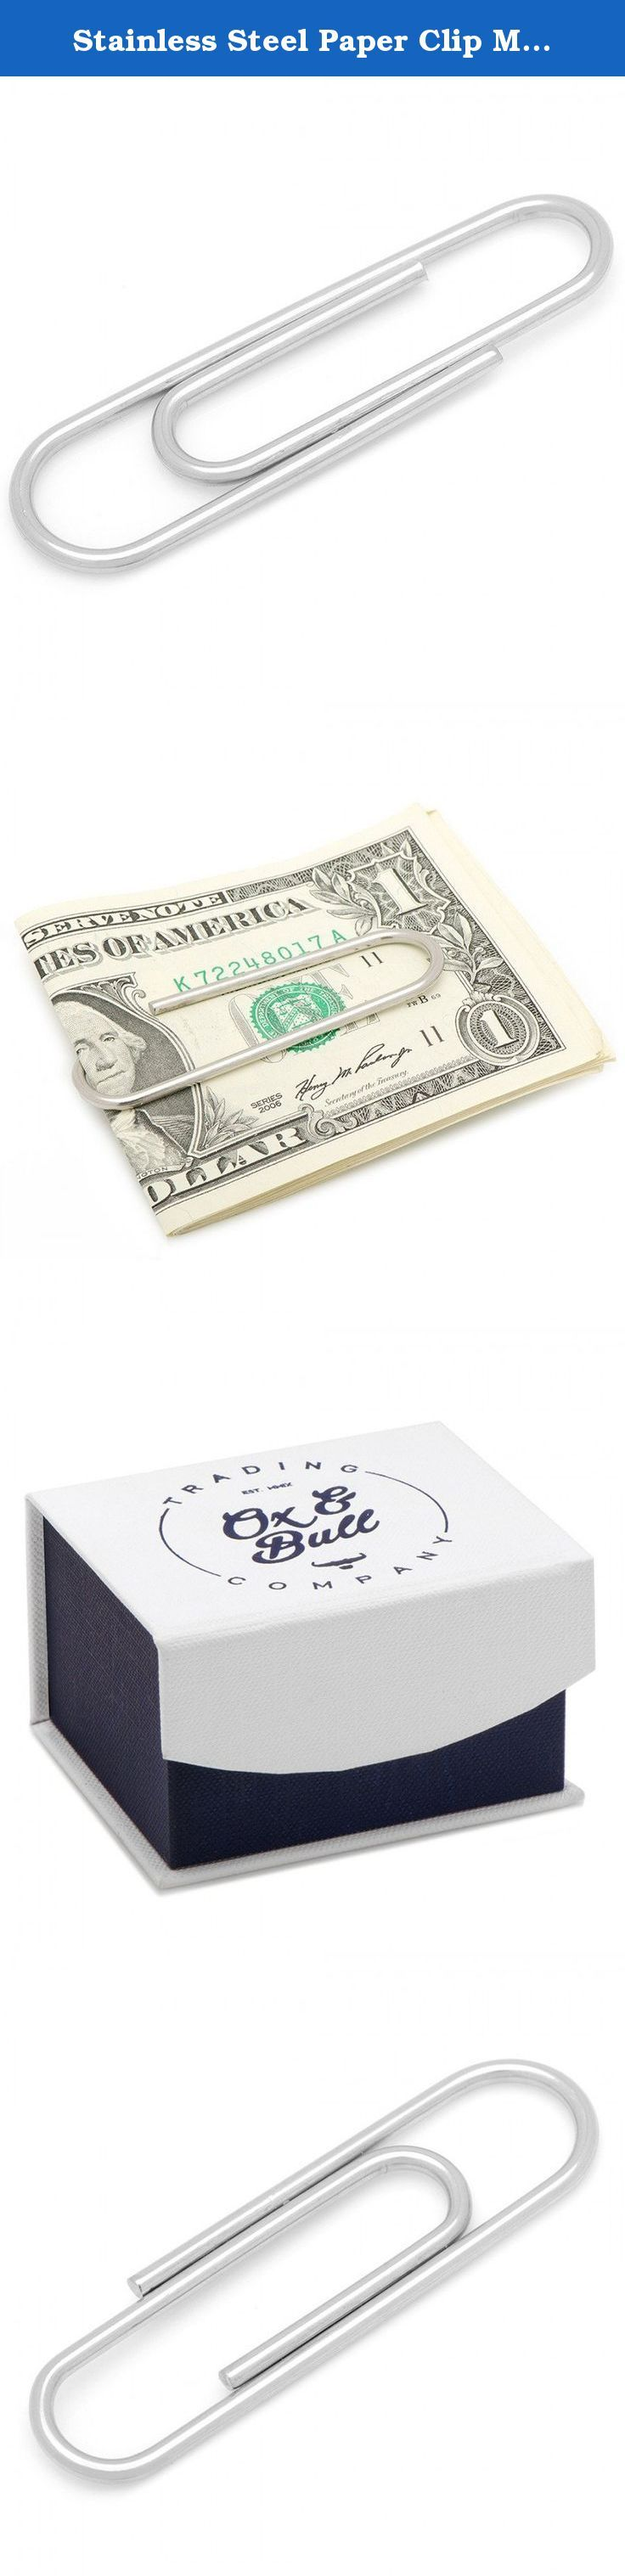 """Stainless Steel Paper Clip Money Clip. Approximately 2"""" x 1/2"""" Stainless steel money clip ."""